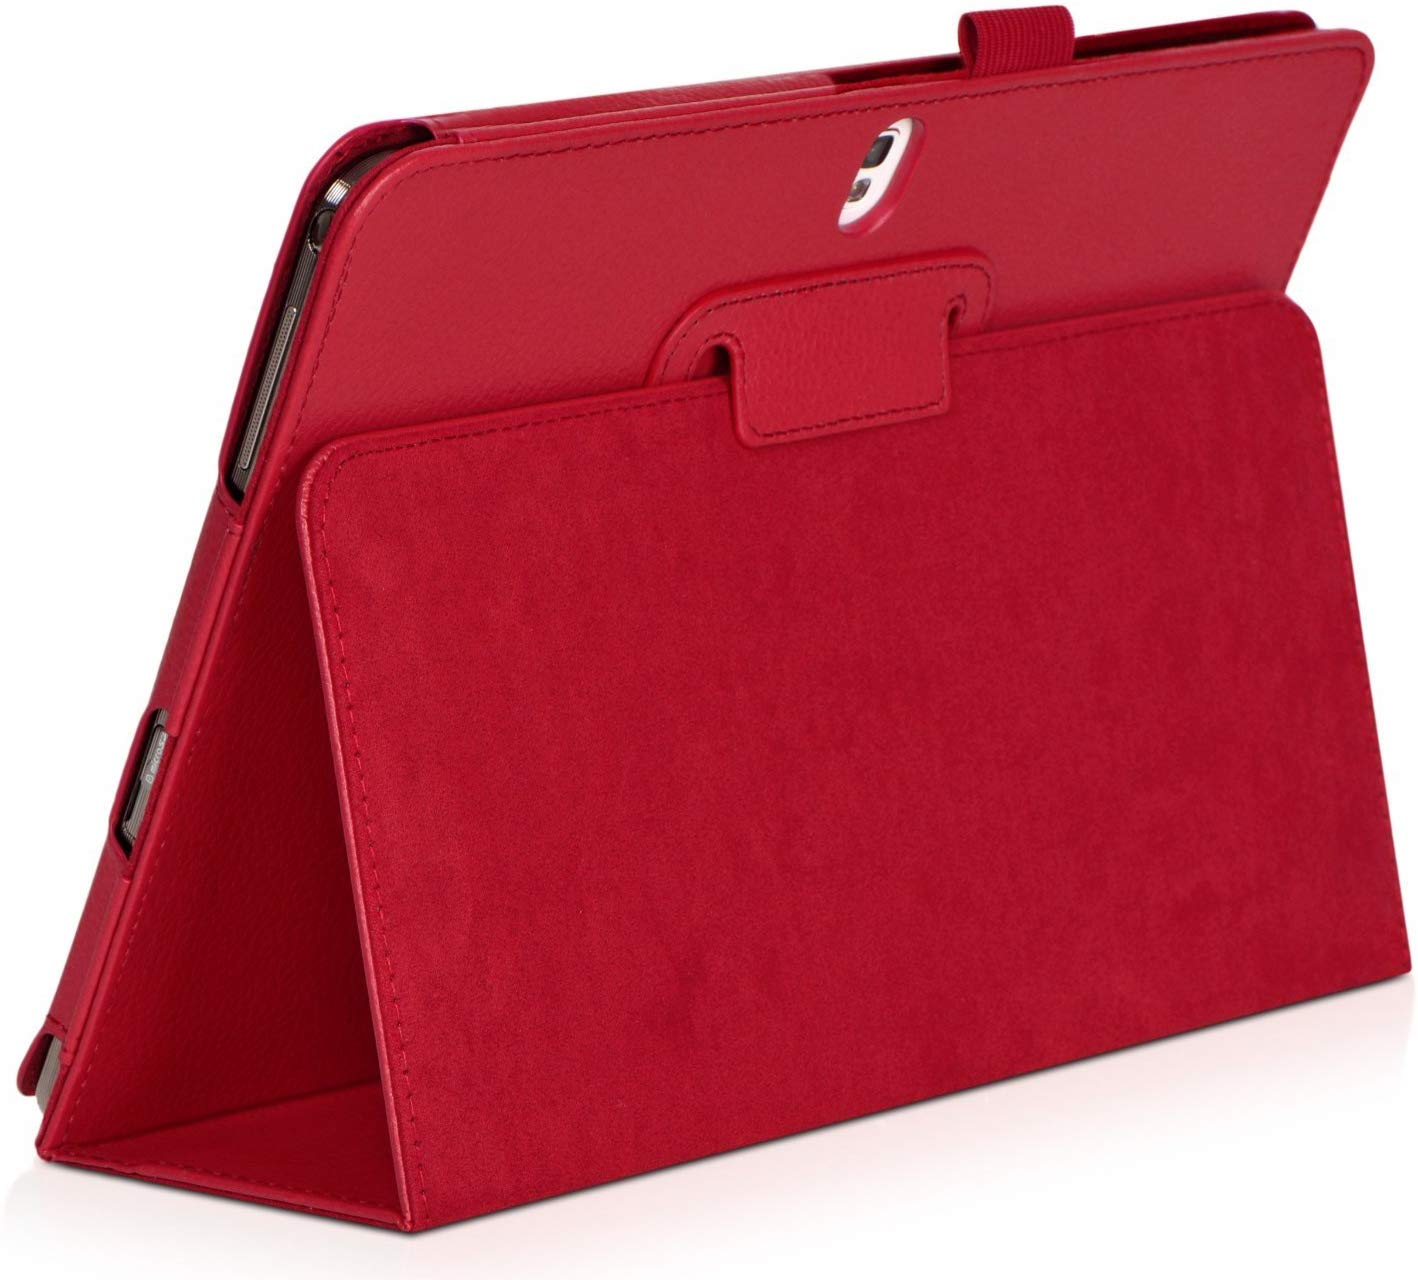 Coque For Samsung Galaxy Tab Pro 10.1 SM-T520 T525 T521 Case Luxury Tablet Cover Fundas Leather Back Cases Capa P600 P605 Shell